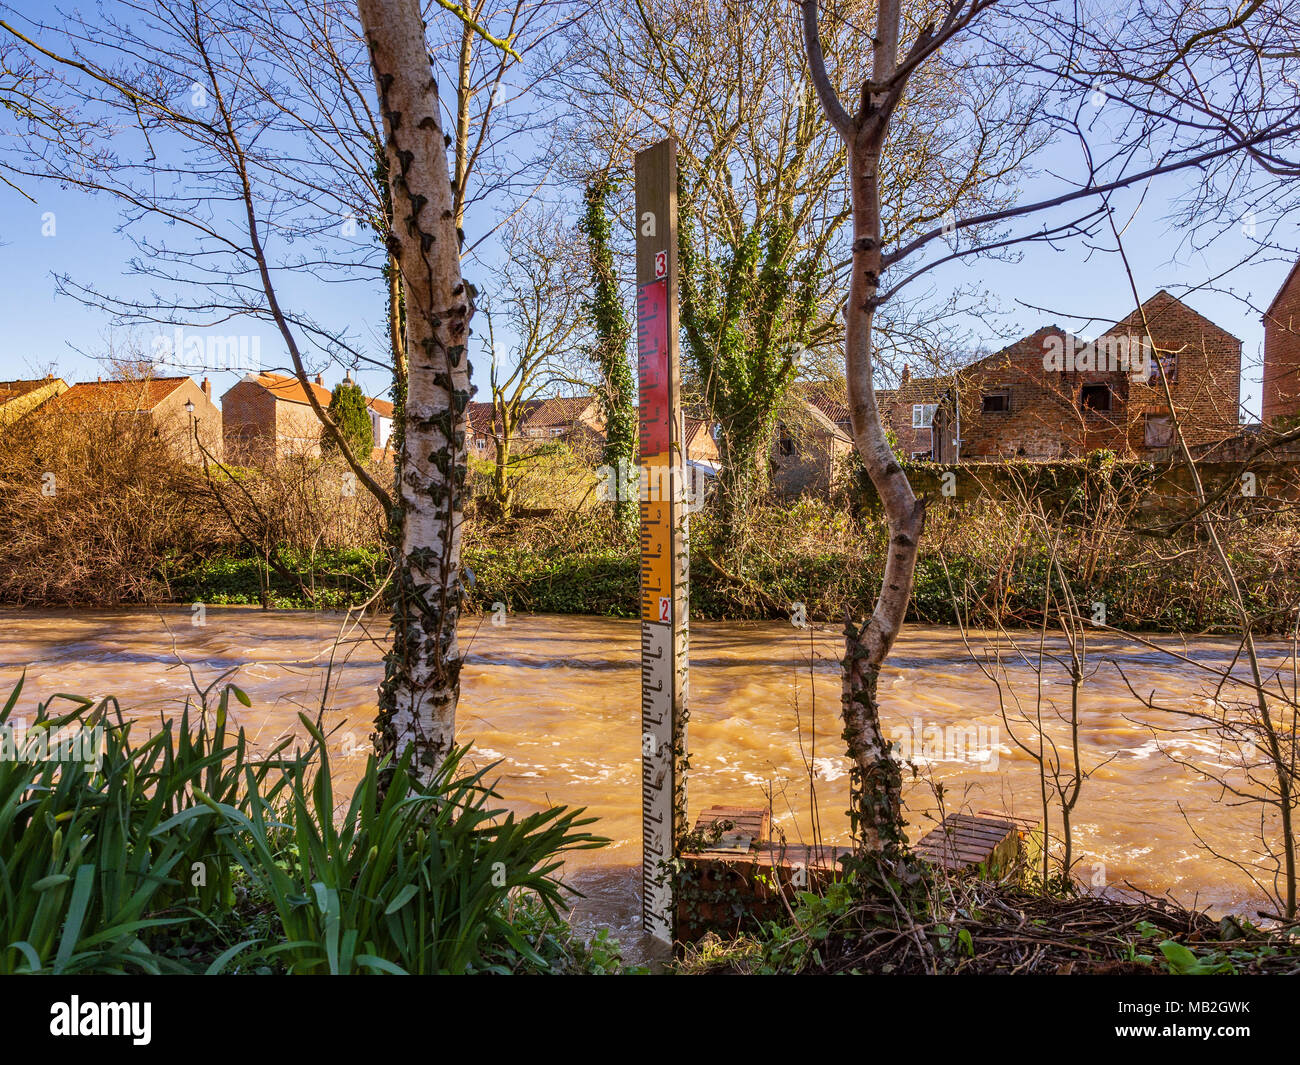 Water level indicator and High water level at Cod Beck, Thirsk, North Yorkshire, UK. - Stock Image